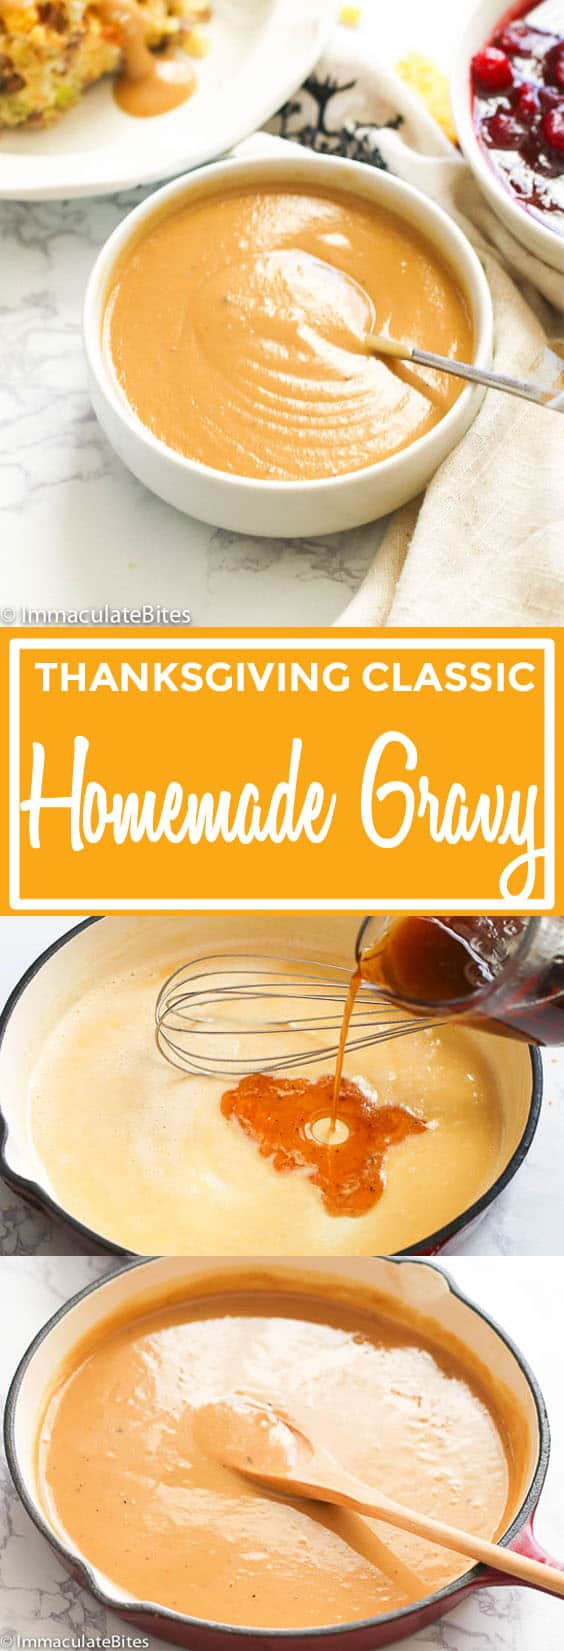 Homemade Gravy